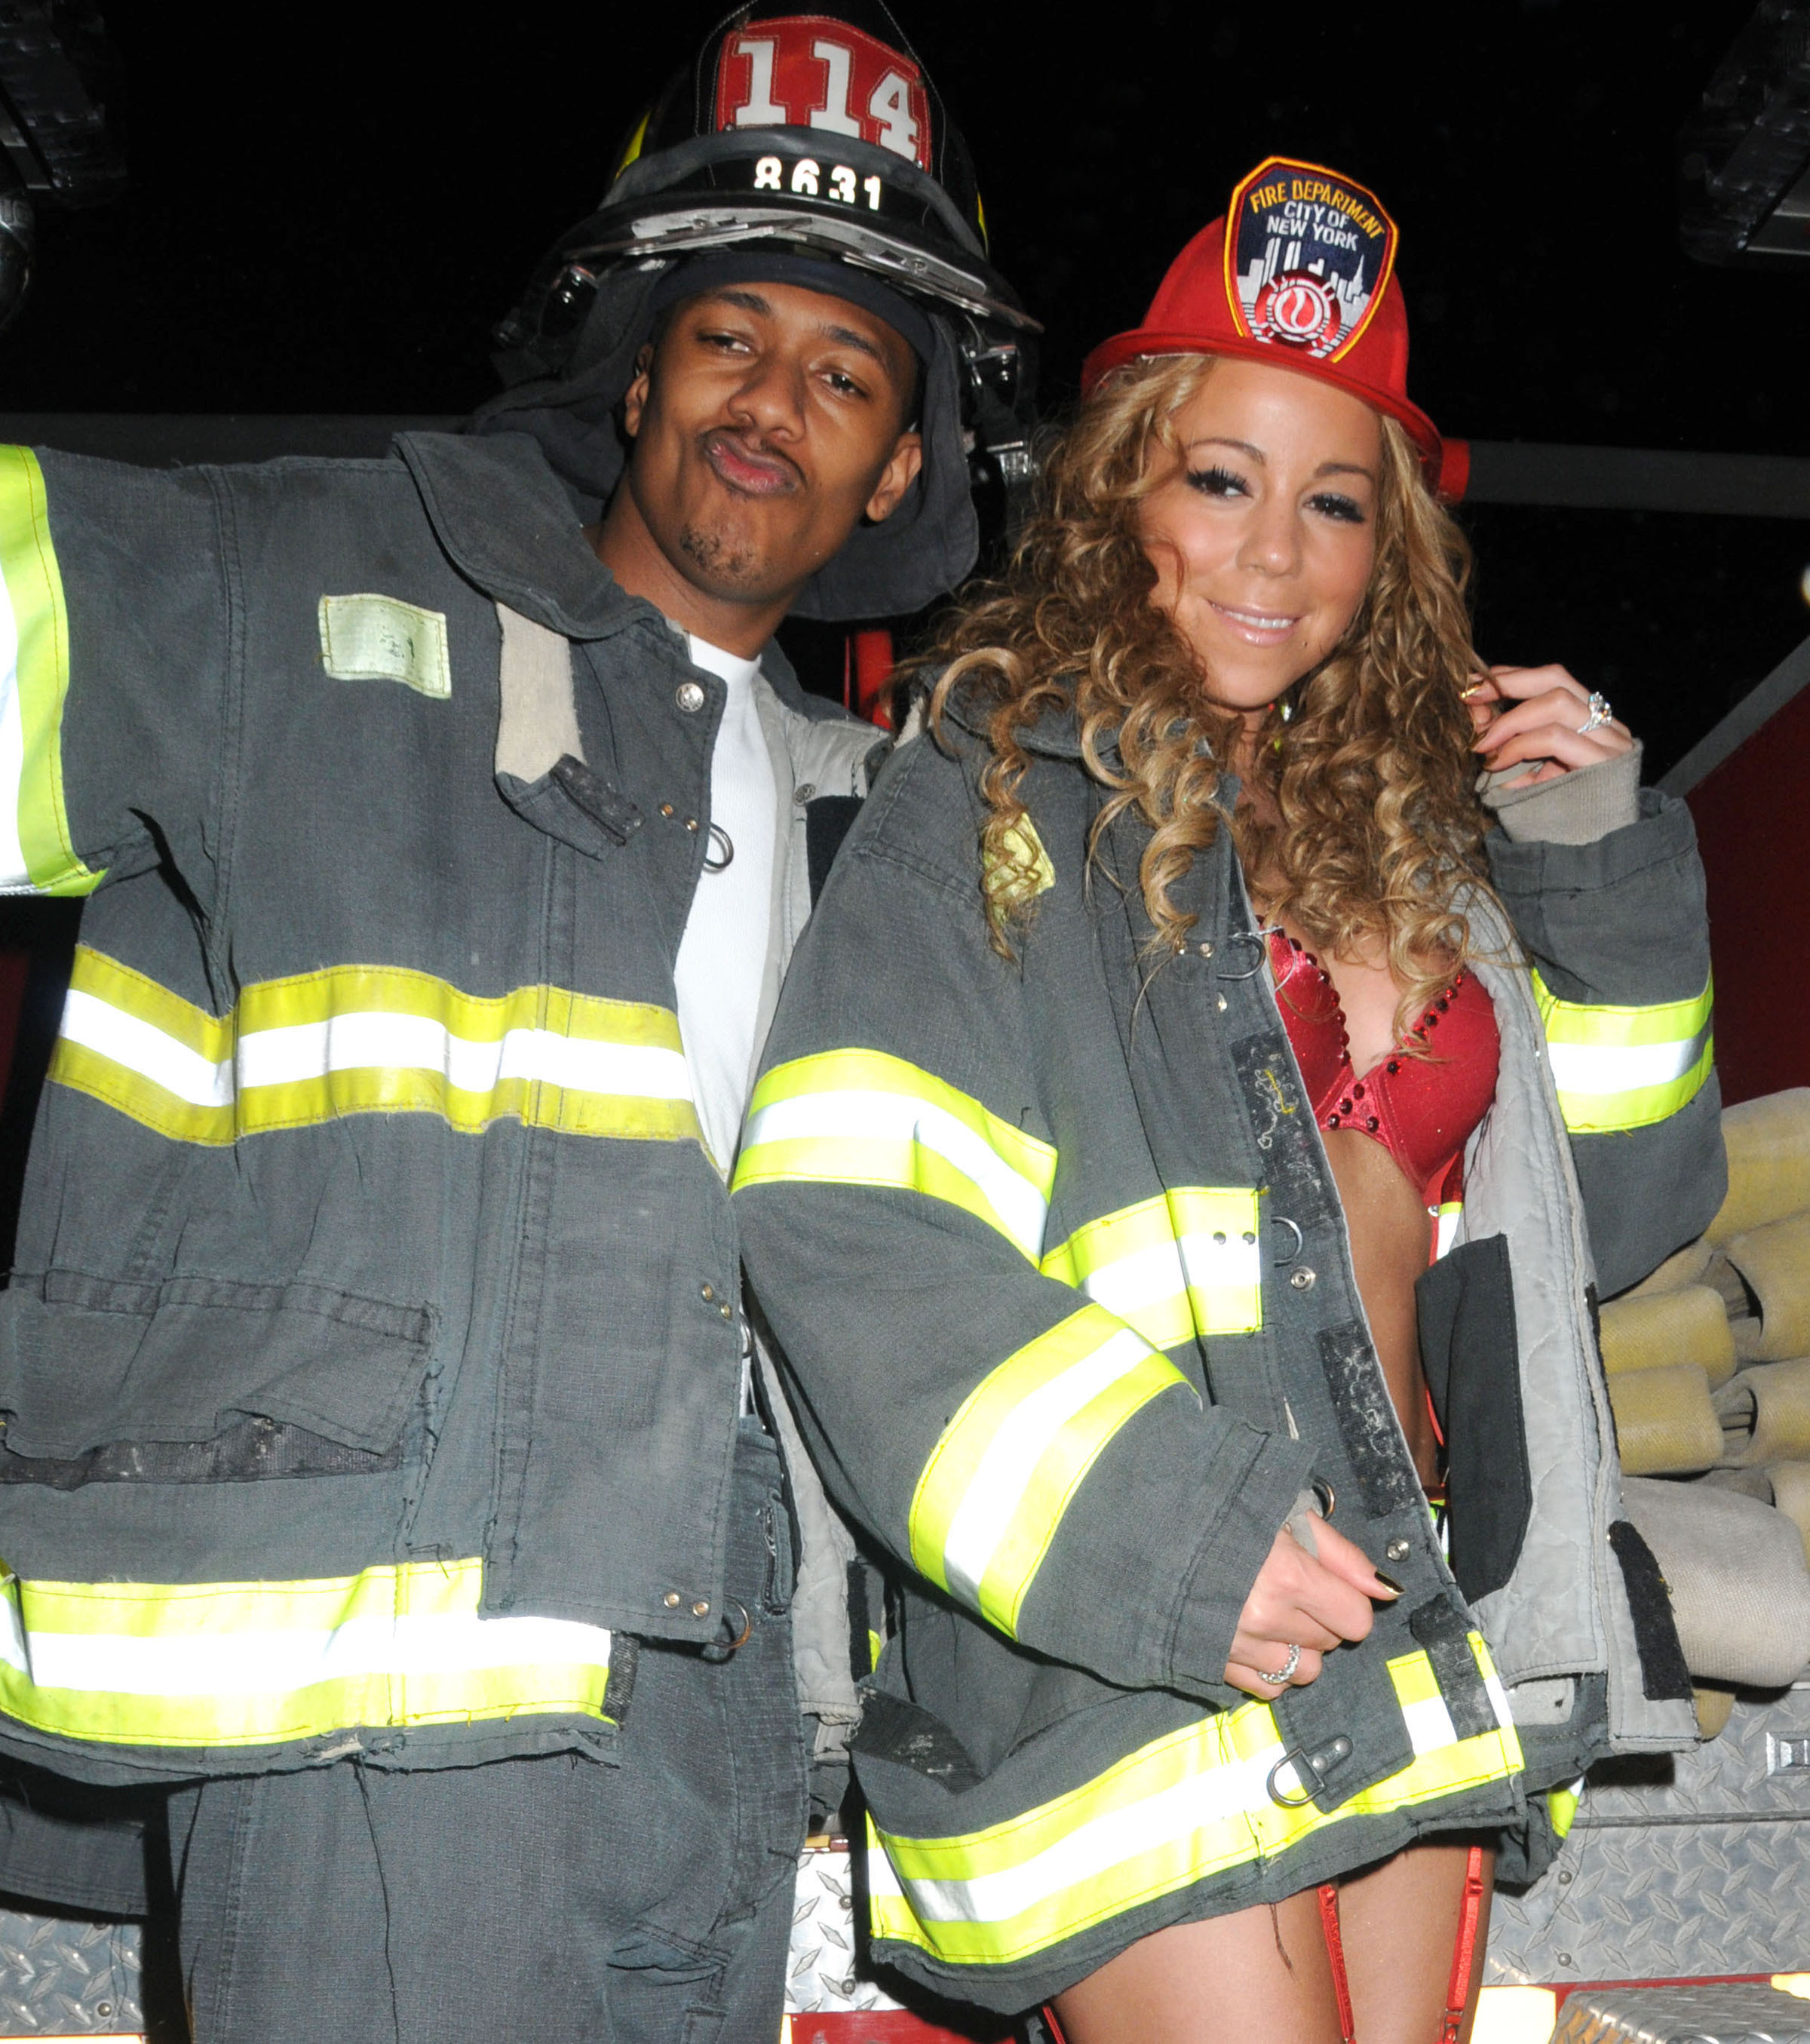 Mariah Carey and Nick Cannon celebrate Halloween in New York City on Oct. 30, 2008.